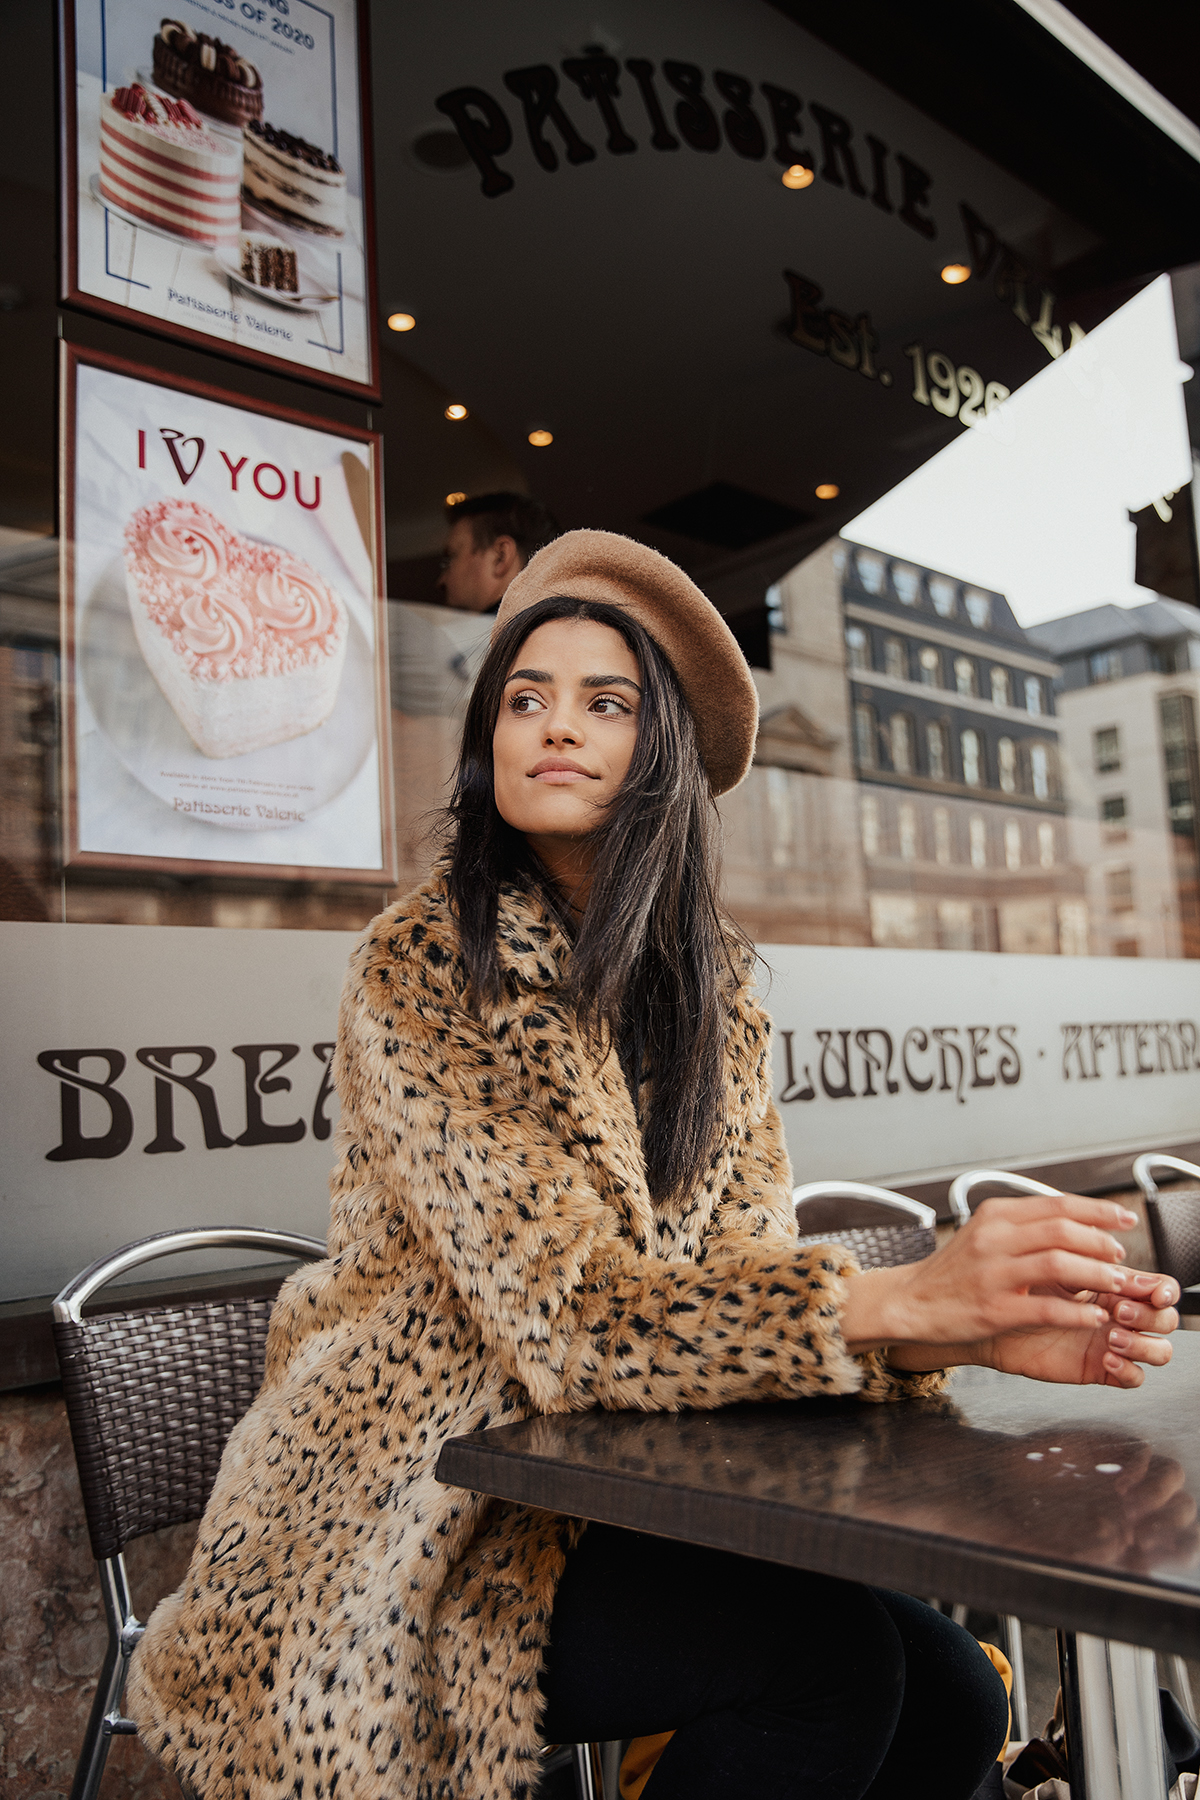 Parisian style photoshoot by London photographer Ailera Stone, dark haired model sitting in a french cafe in a beret and a leopard coat